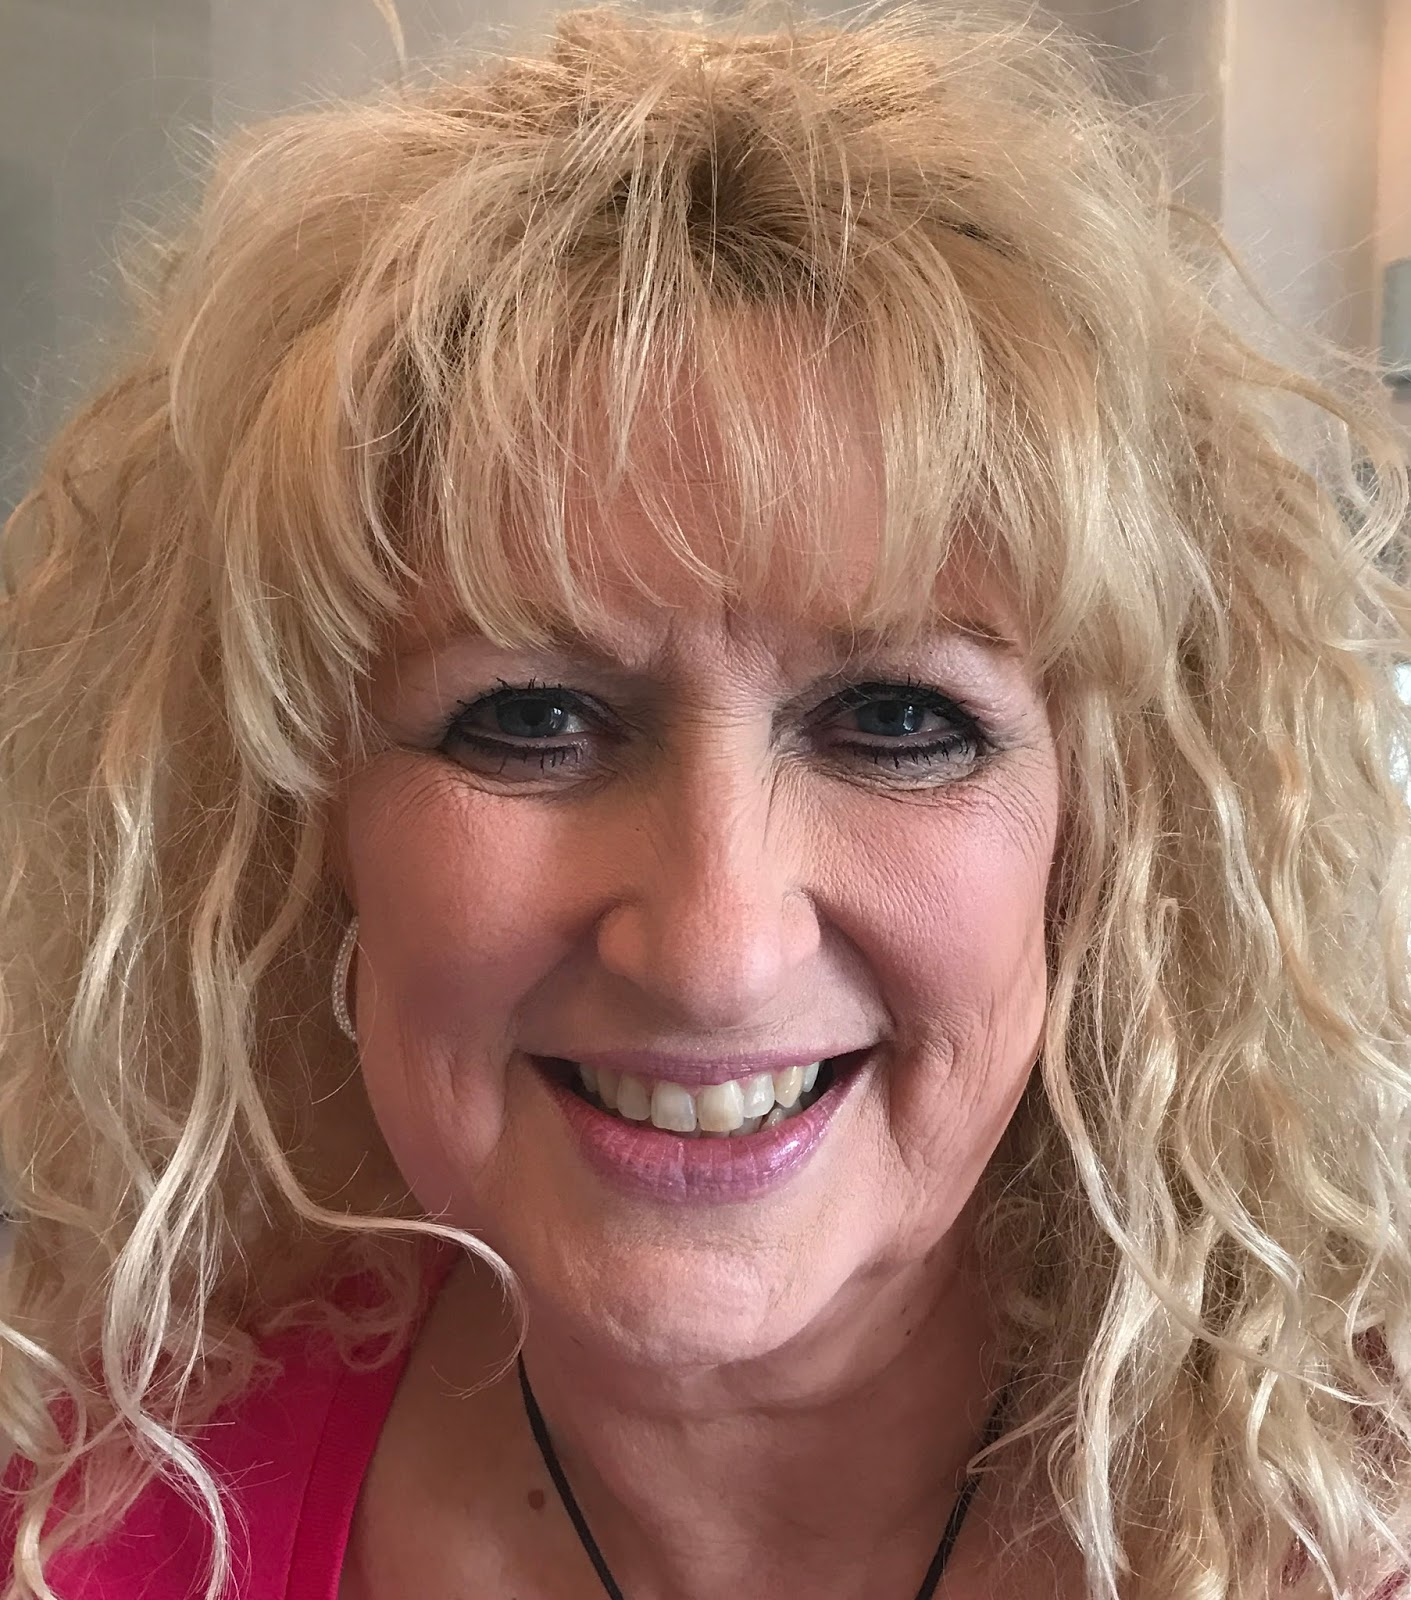 Linda Mclean from Canterbury in Kent tells Is This Mutton? about what inspired her skincare regime and how she cares for dry and sensitive skin